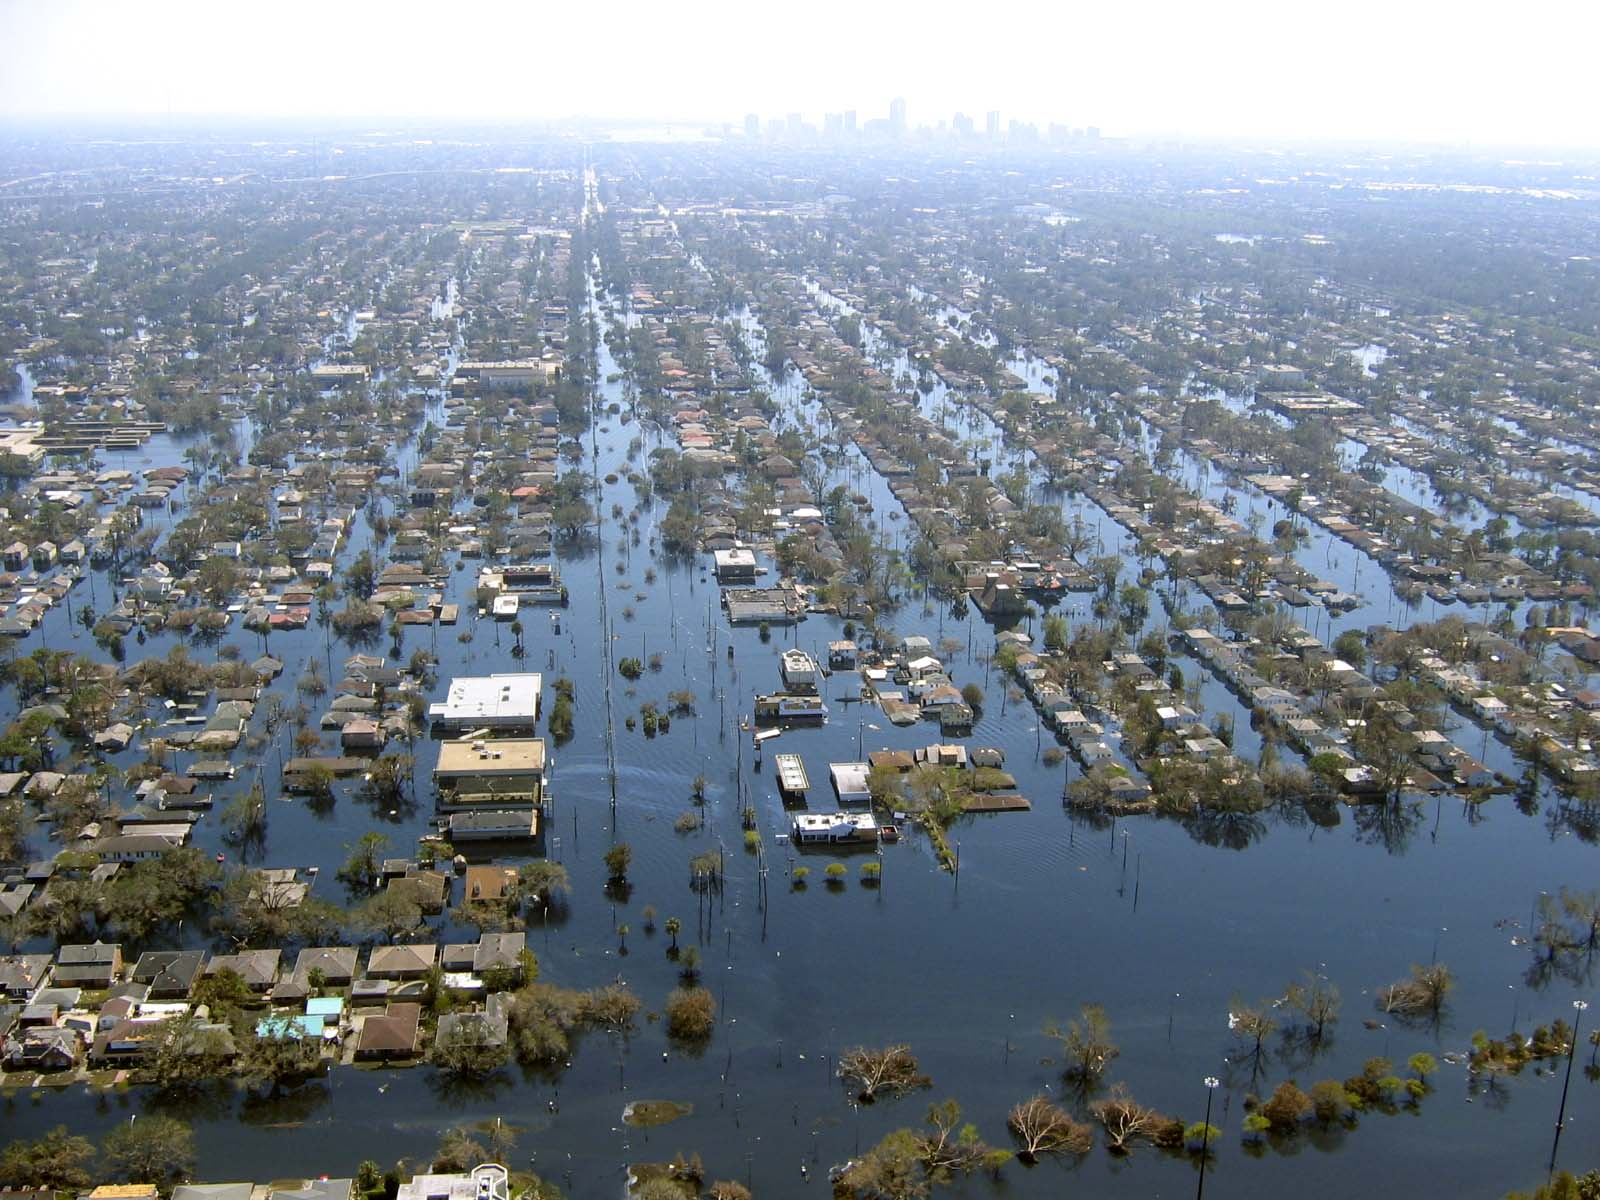 New Orleans floods from the air - the perfect place to show the concept of anywhere, better, best in action